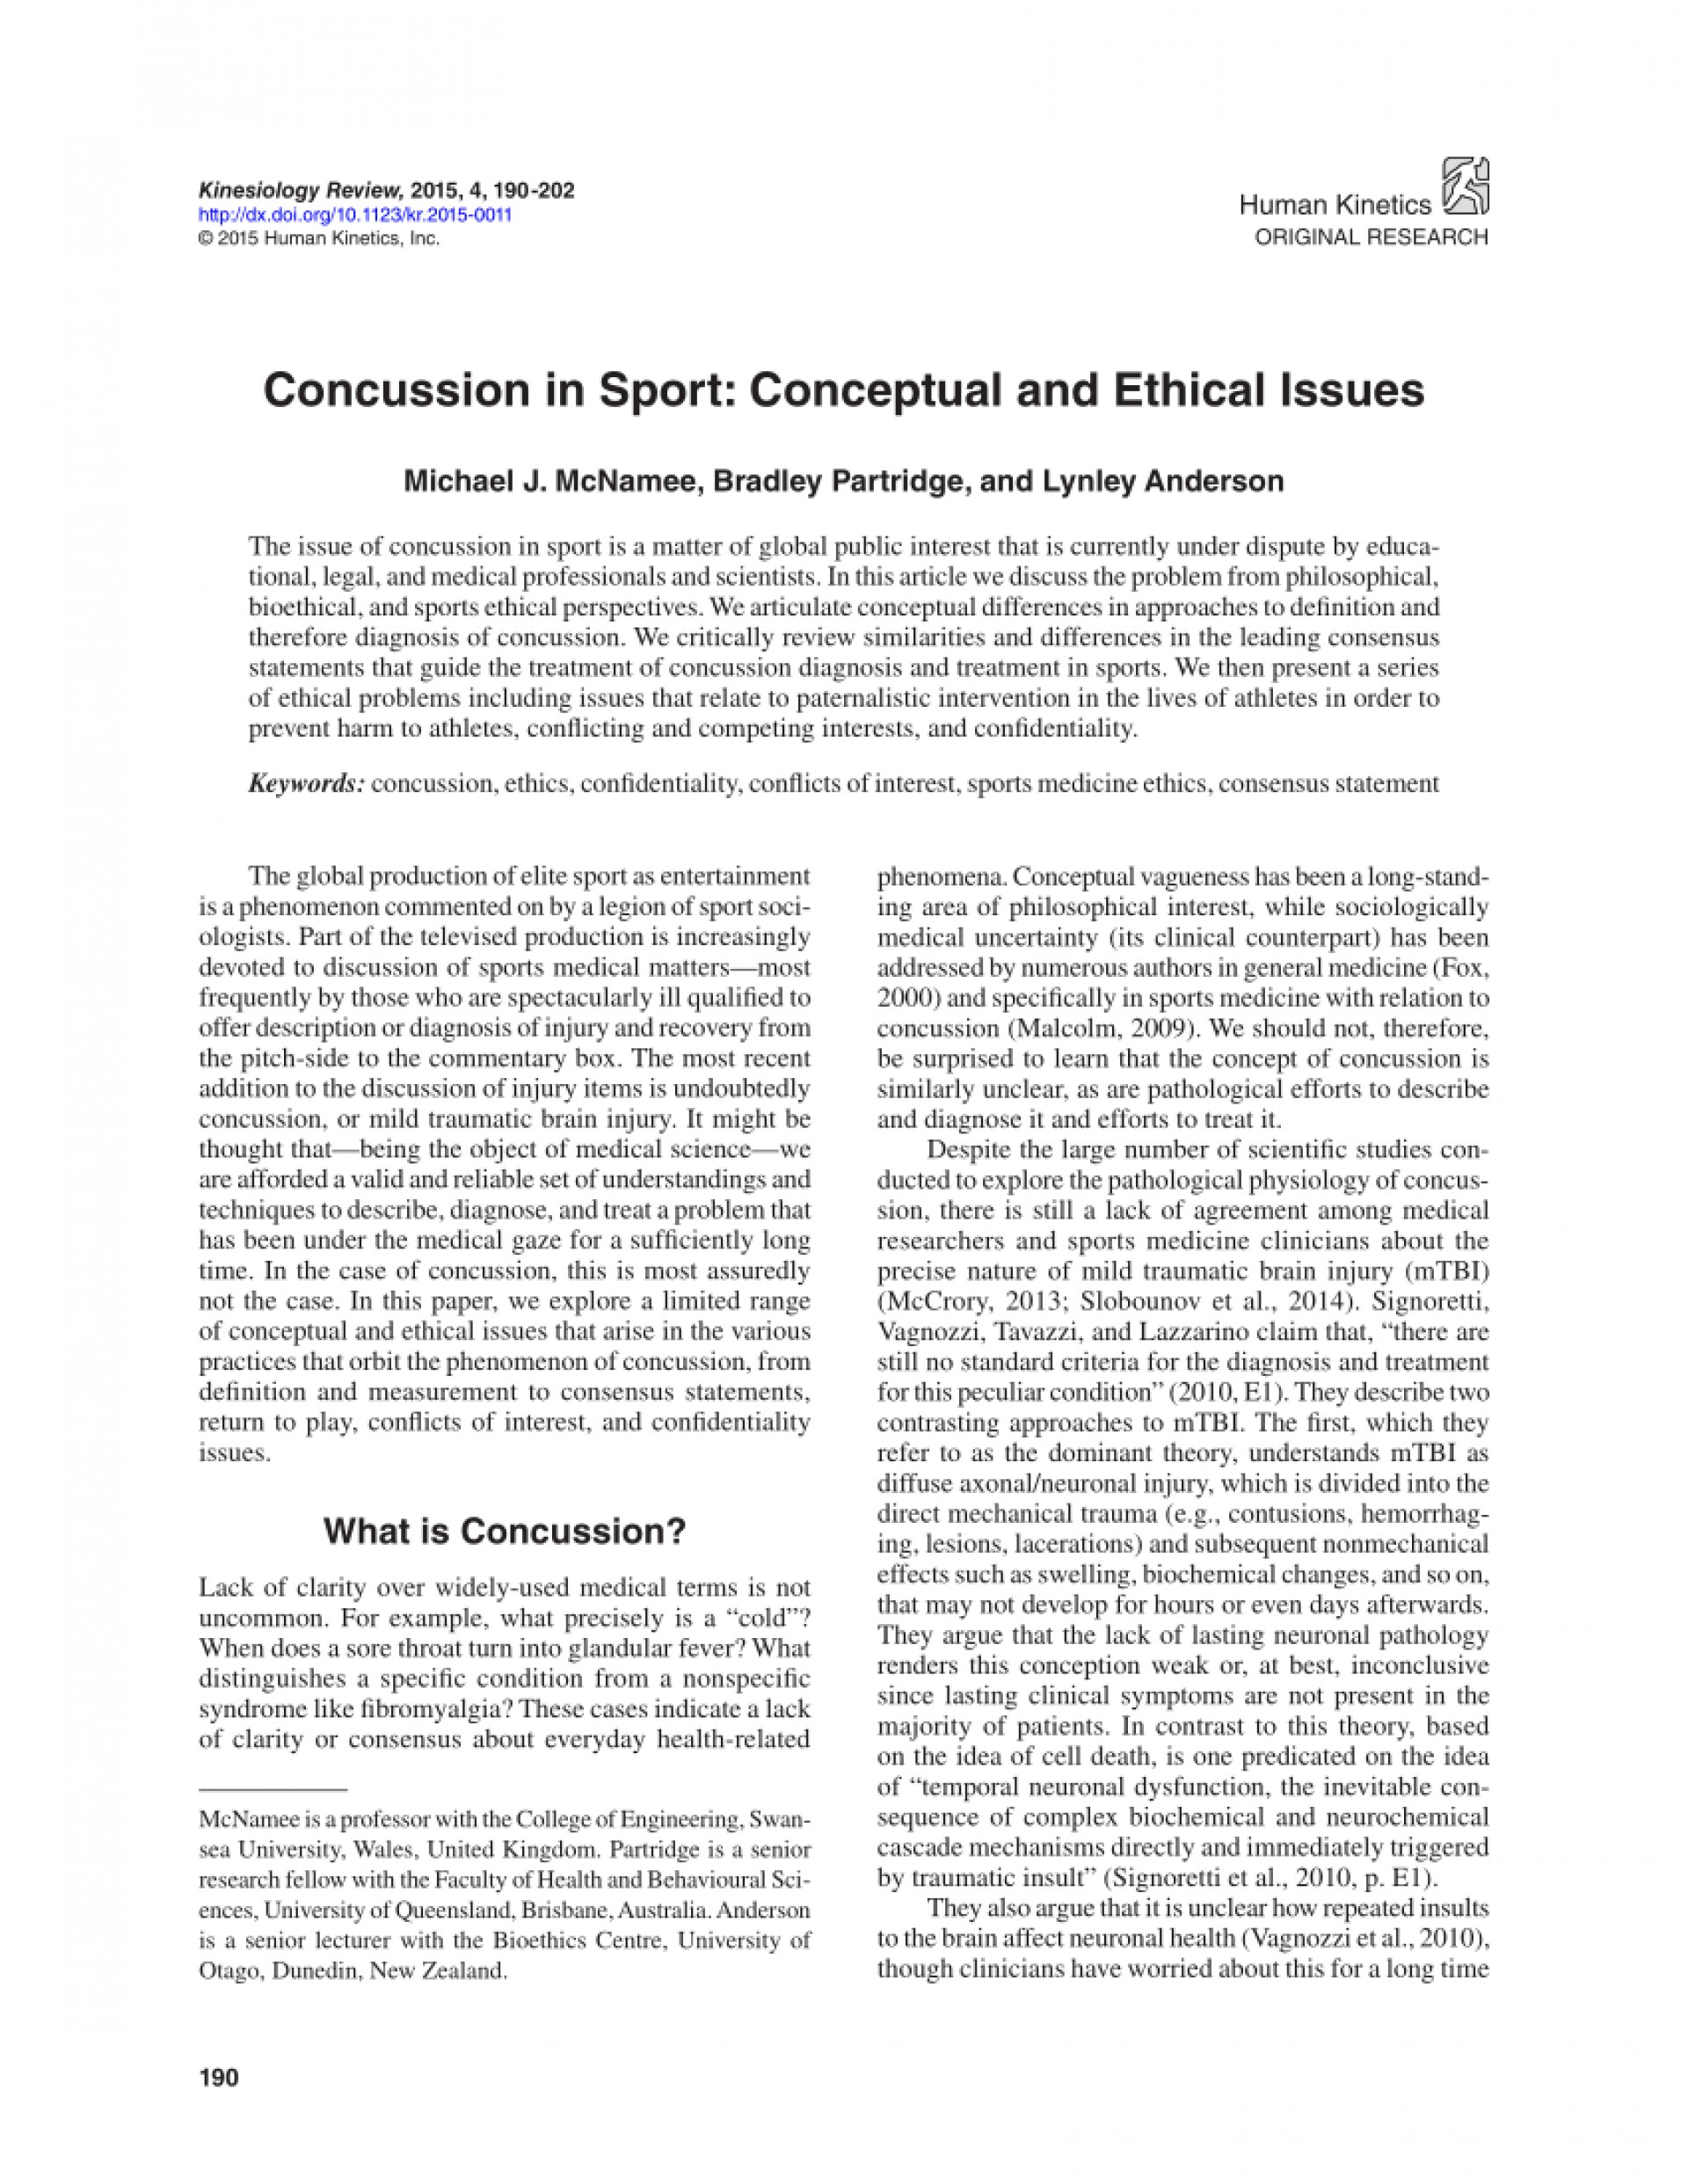 005 Concussion Essay Example Beautiful Outline Examples Conclusion 1920